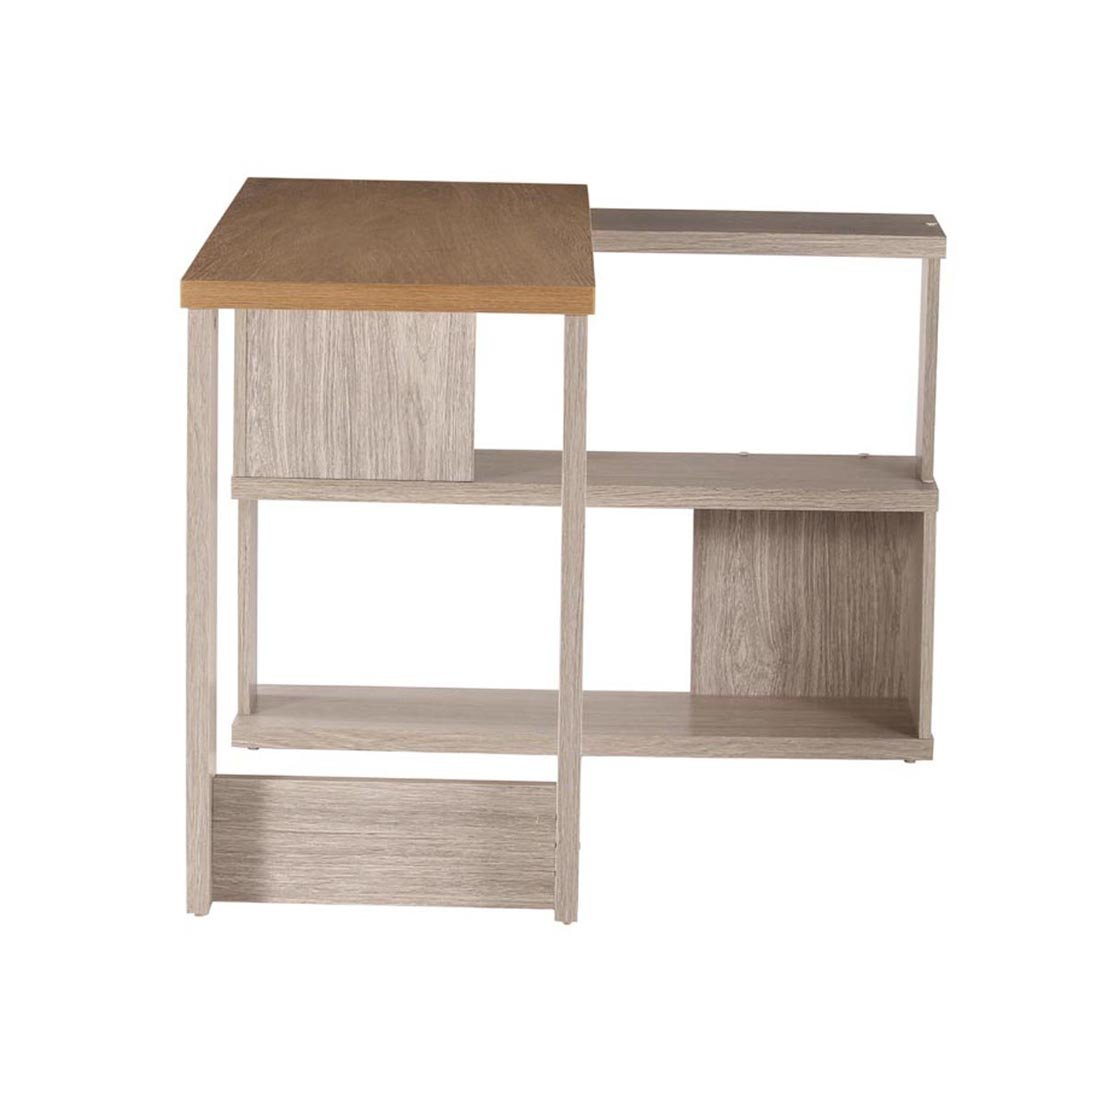 Woodness chicago y engineered wood l shaped computer desk matte finish grey oak amazon in home kitchen